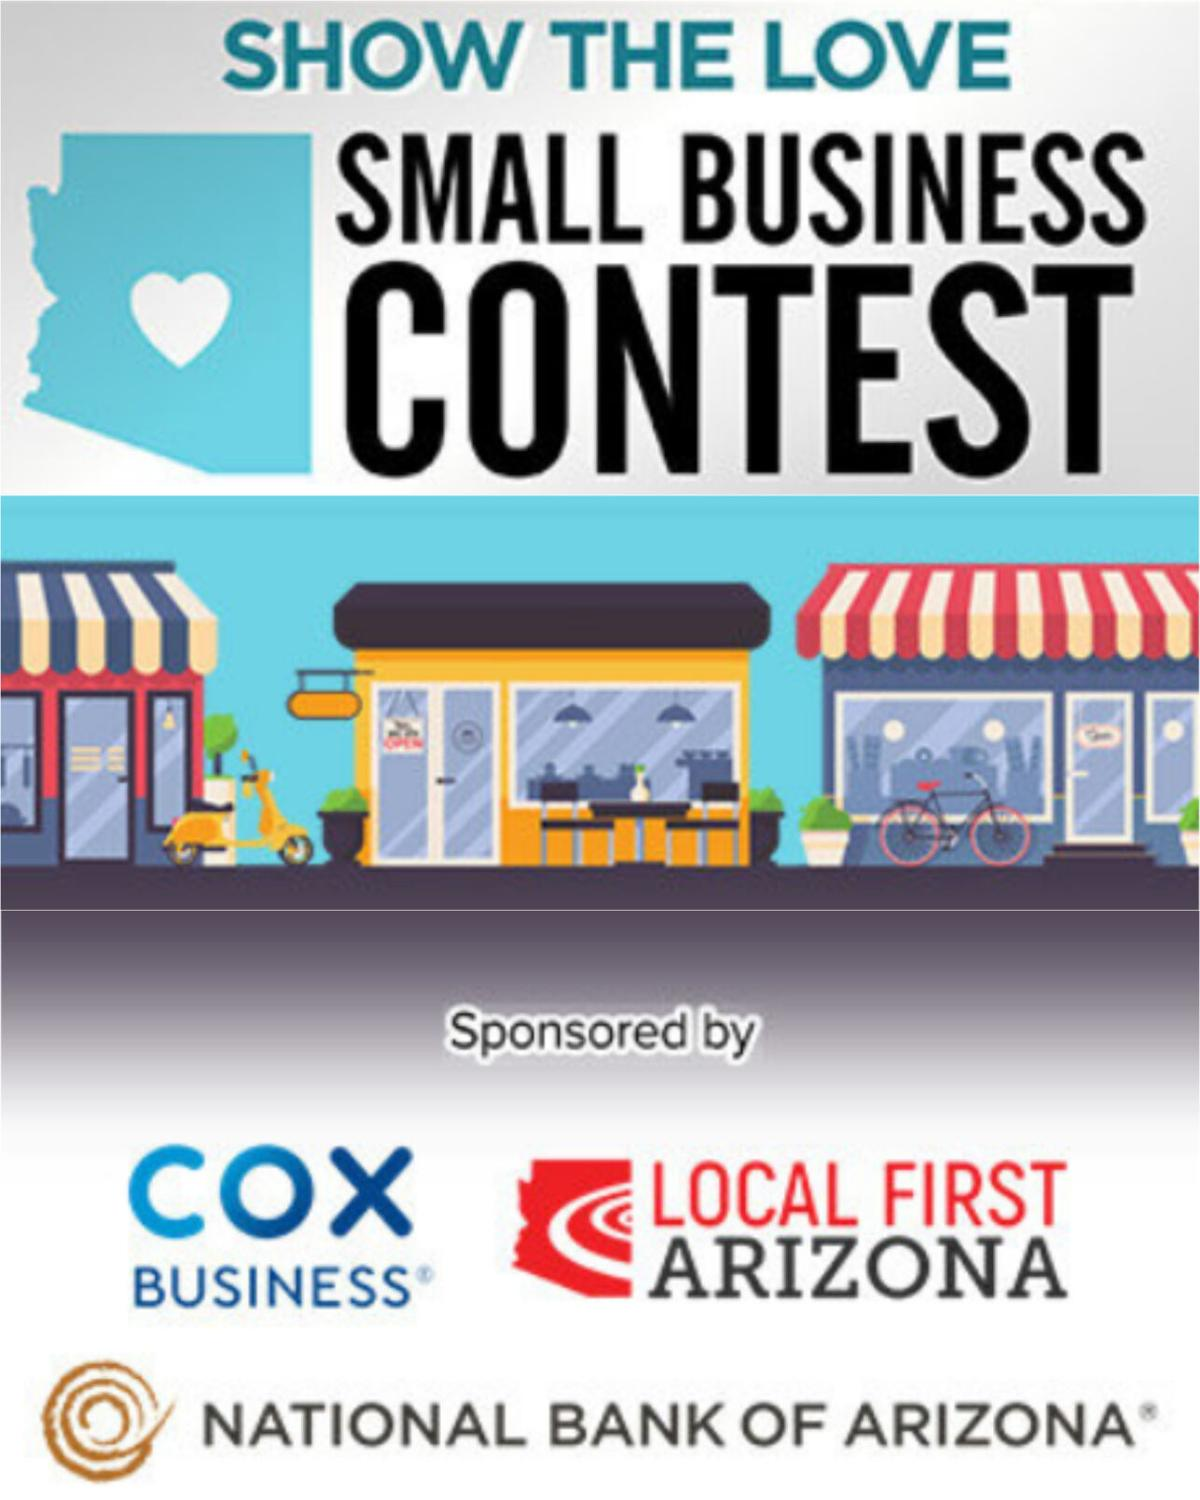 Show the Love Small Business Contest